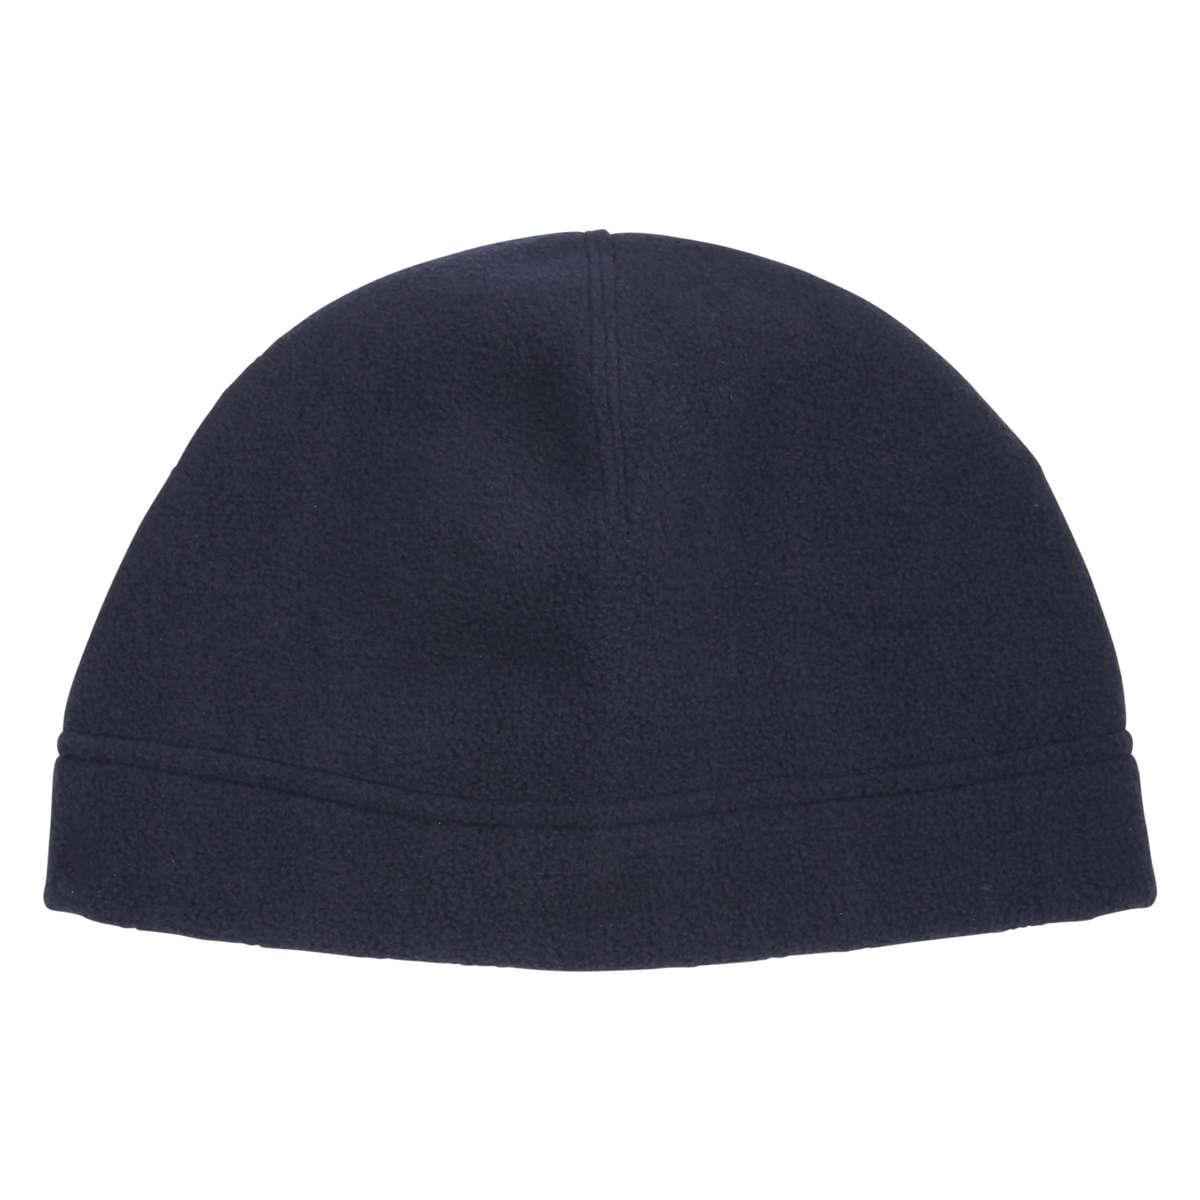 52aee938daa Joe Fresh Men s Fleece Hat in Blue for Men - Lyst